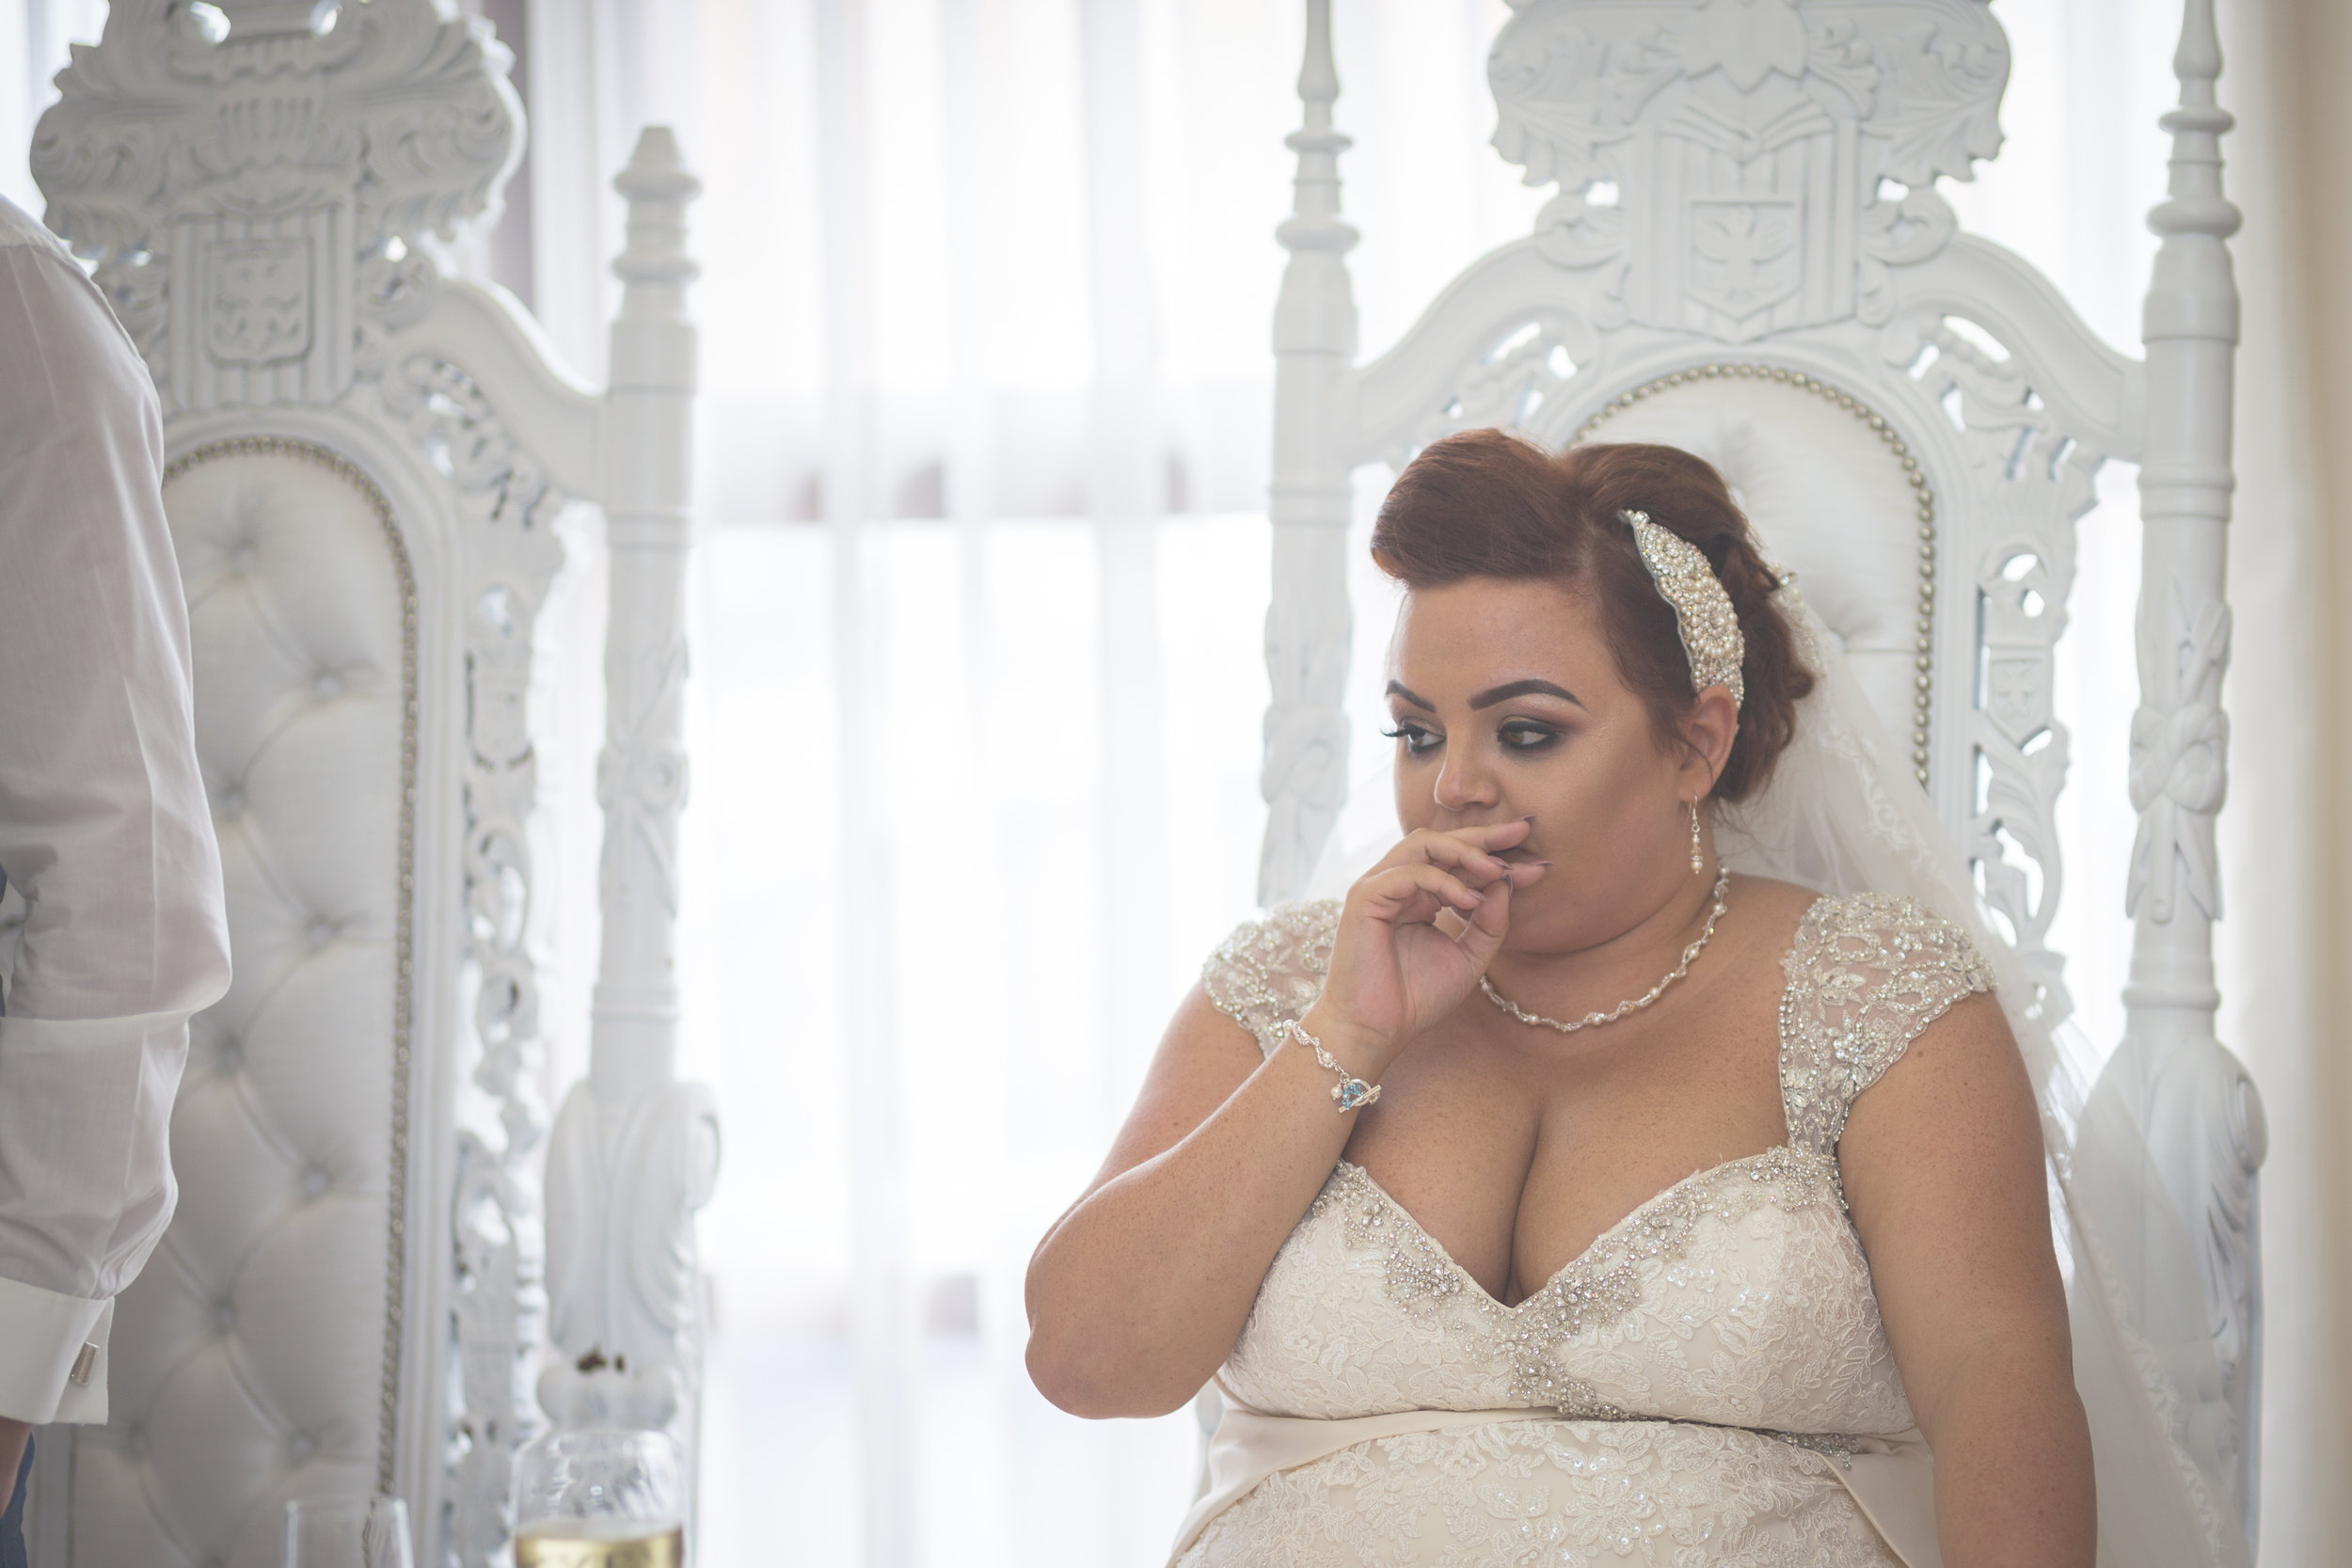 Antoinette & Stephen - Speeches | Brian McEwan Photography | Wedding Photographer Northern Ireland 58.jpg